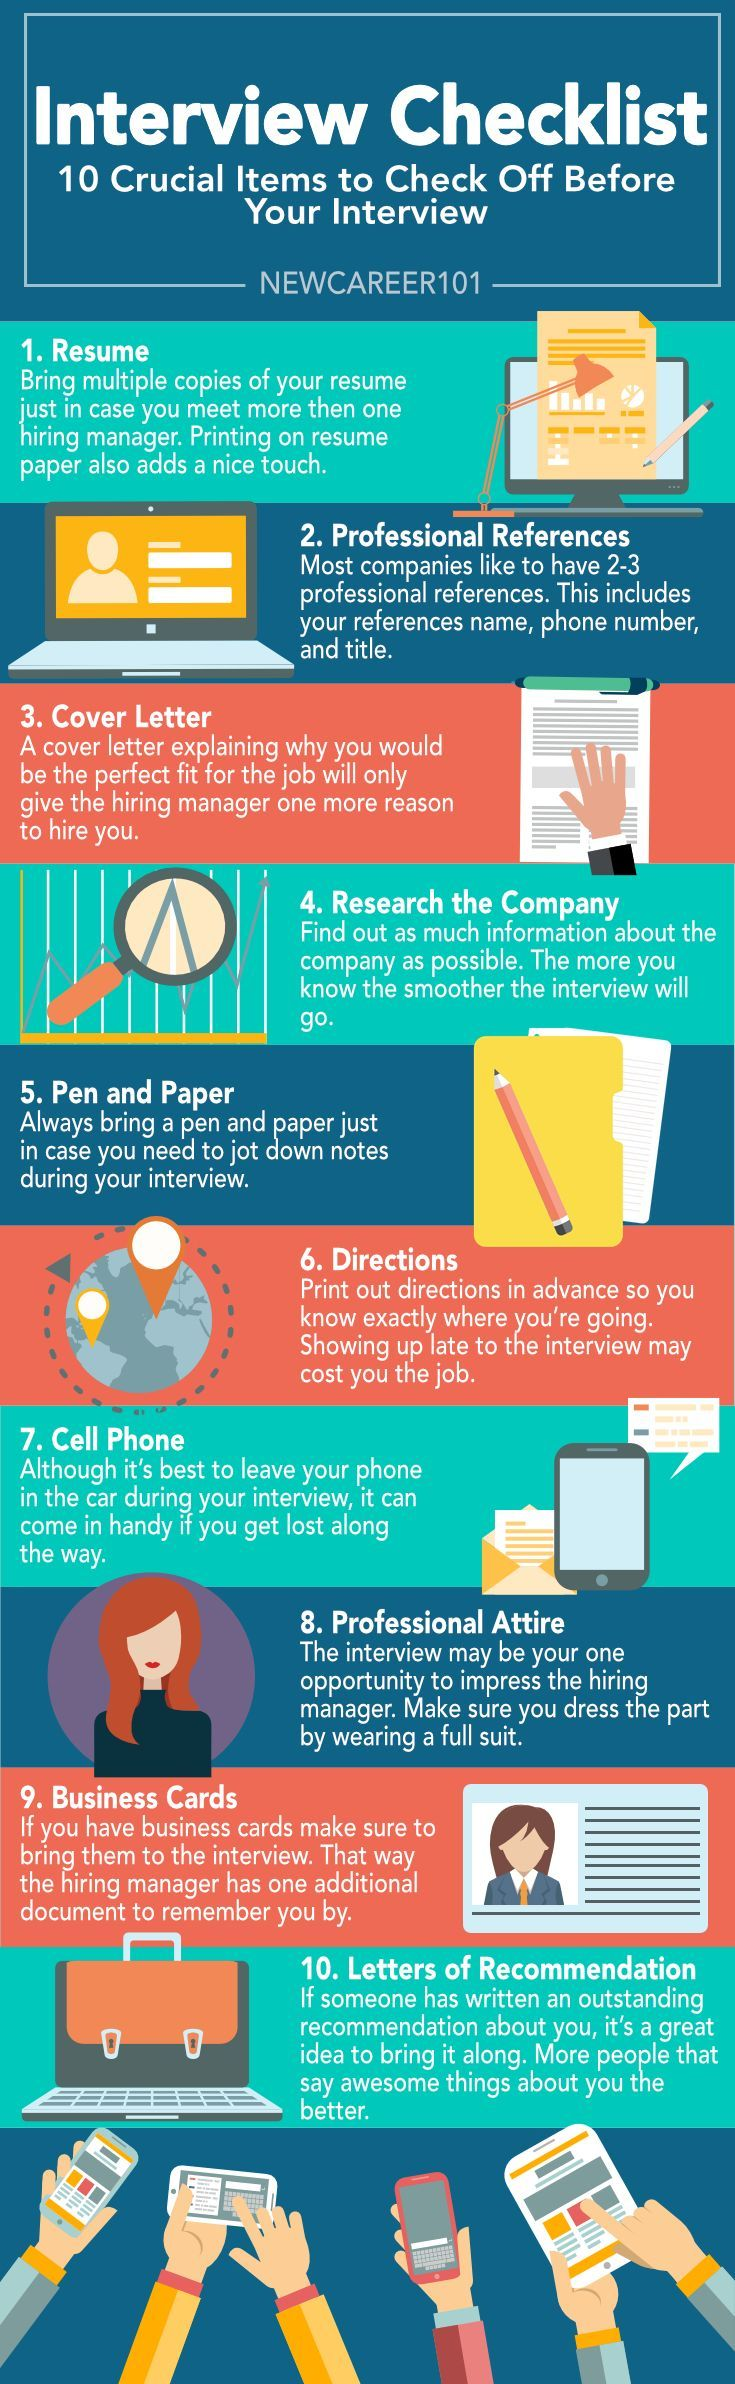 ● INTERVIEW CHECKLIST ● ______________________________ http://NewCareer101.com ⋙ An interview is a crucial part of the hiring process. This is your chance to show the hiring manager why you're the perfect fit for the job. Make sure you spend enough time preparing for the interview. That way you can be confident you checked everything off your list.